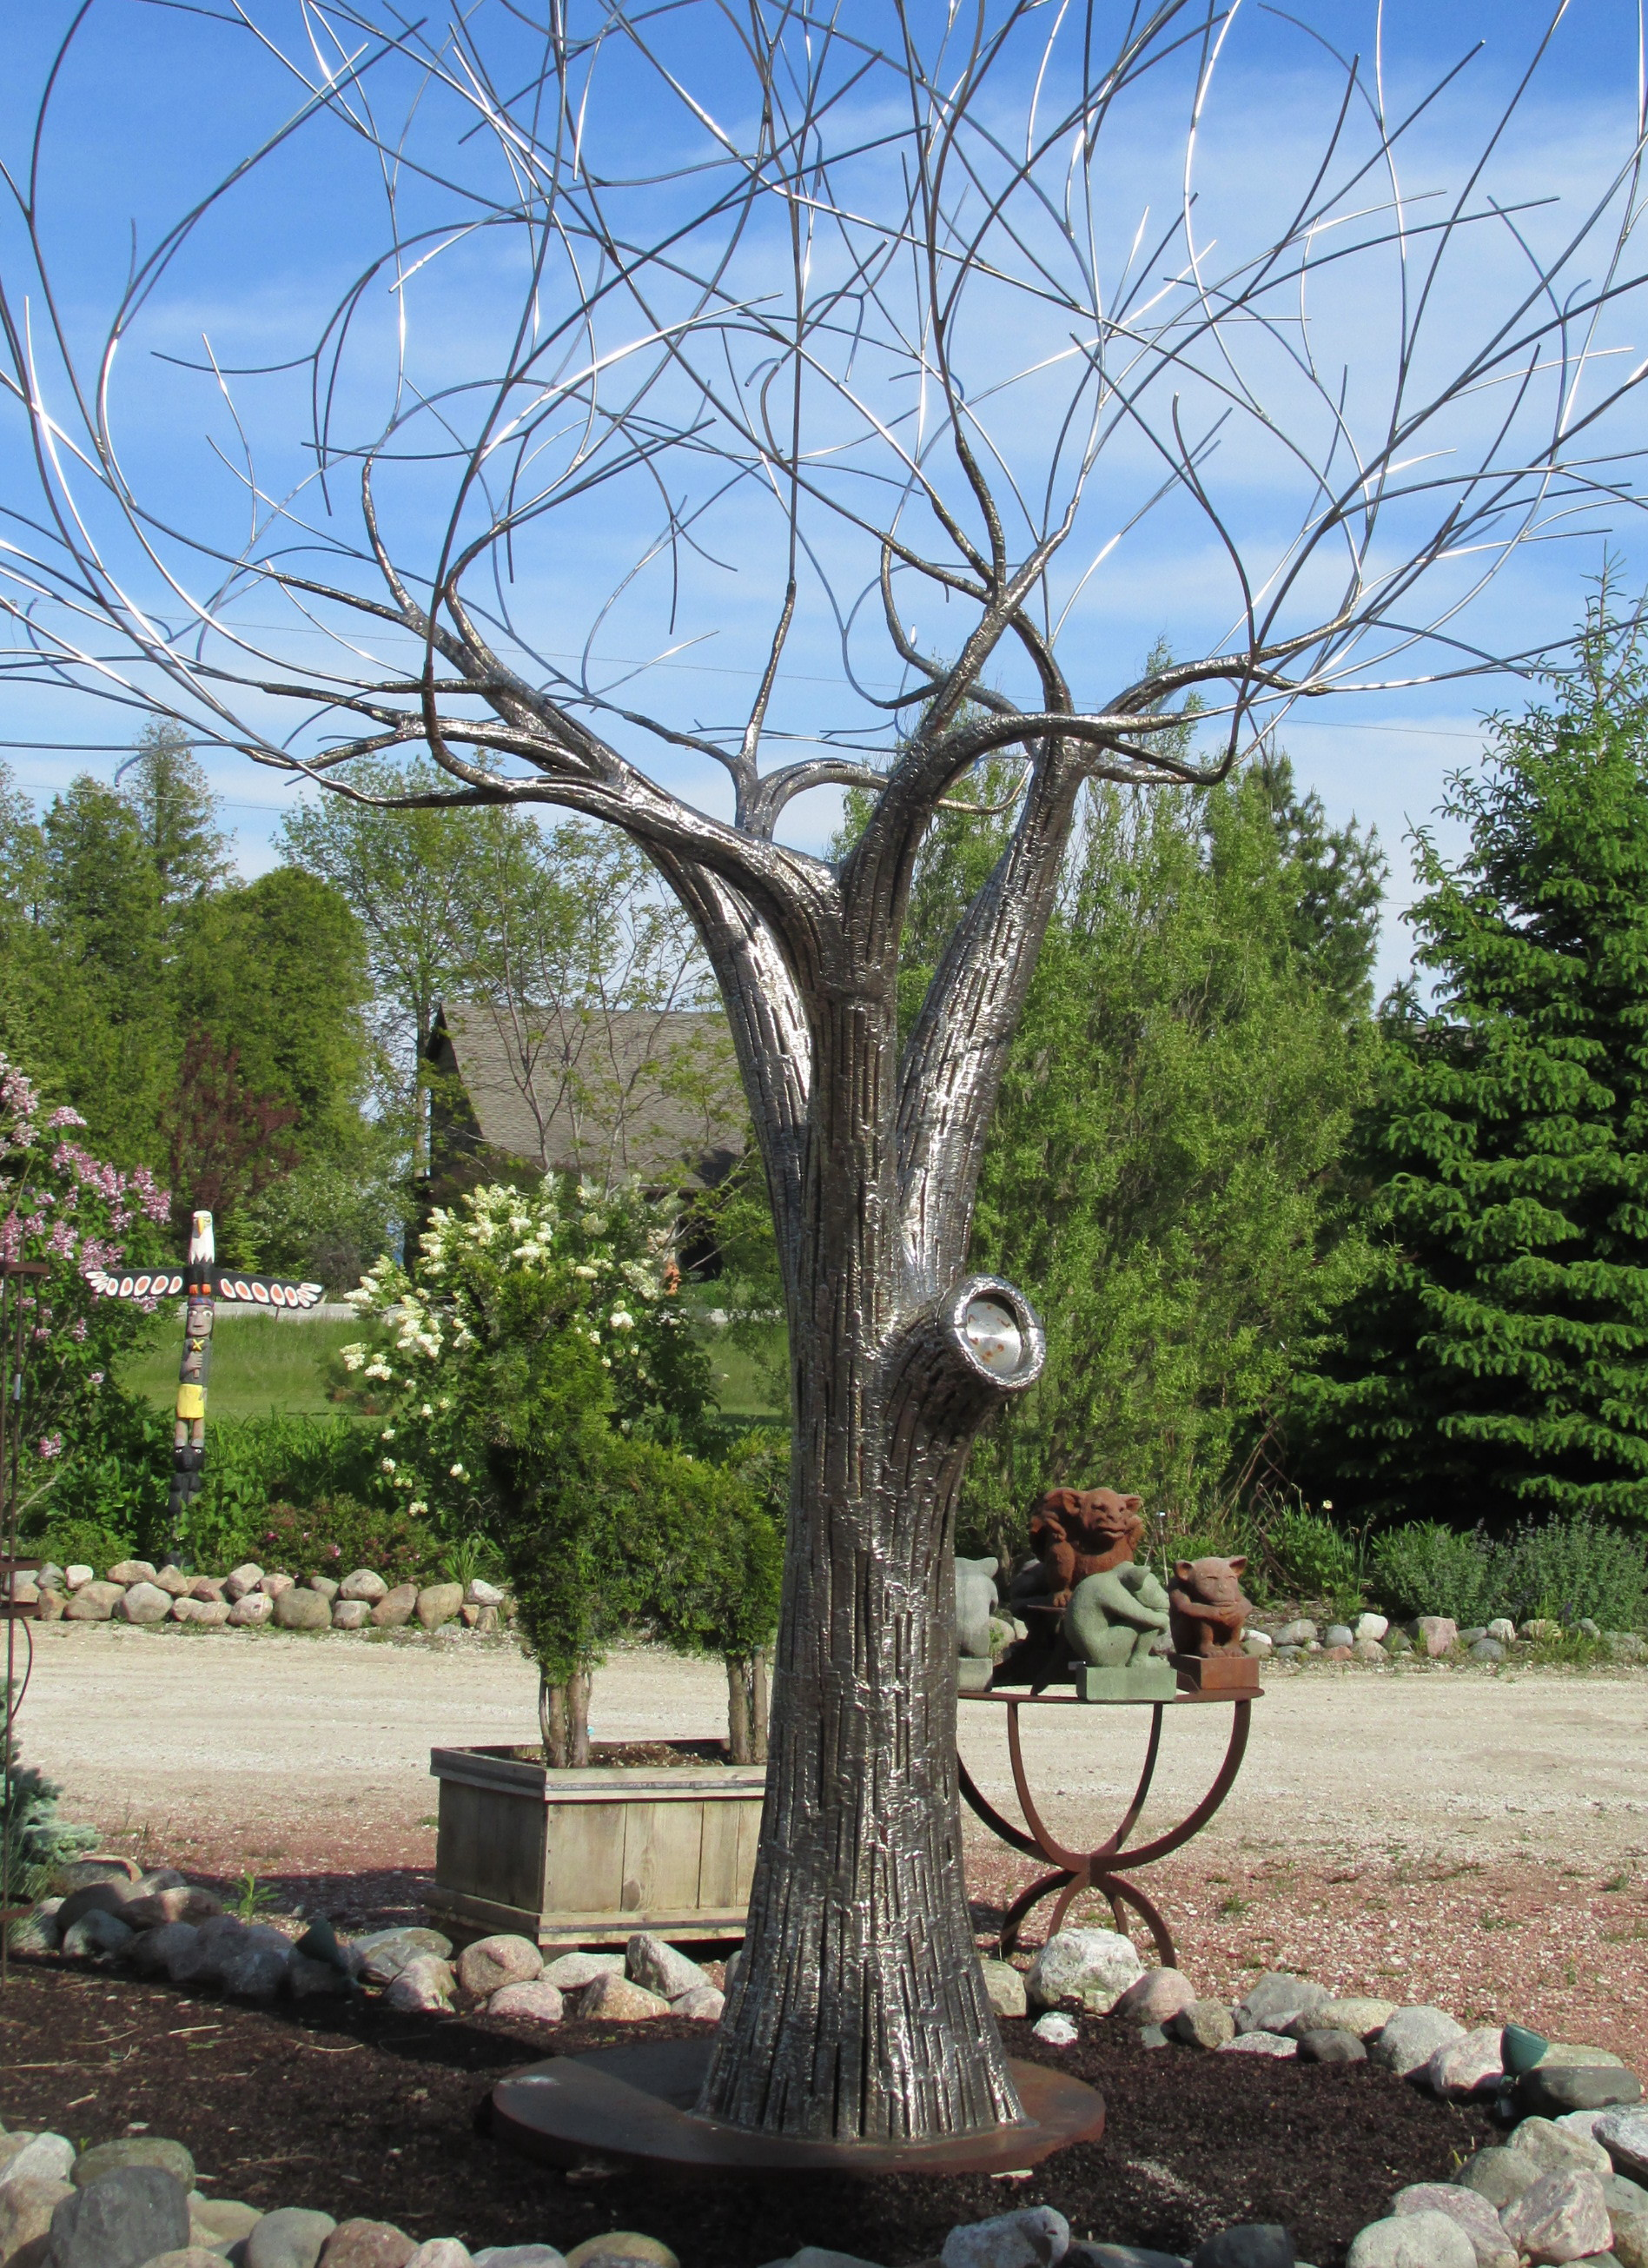 Very well done full size metal tree sculpture. I'll bet this piece even looks good in the winter with the snow!